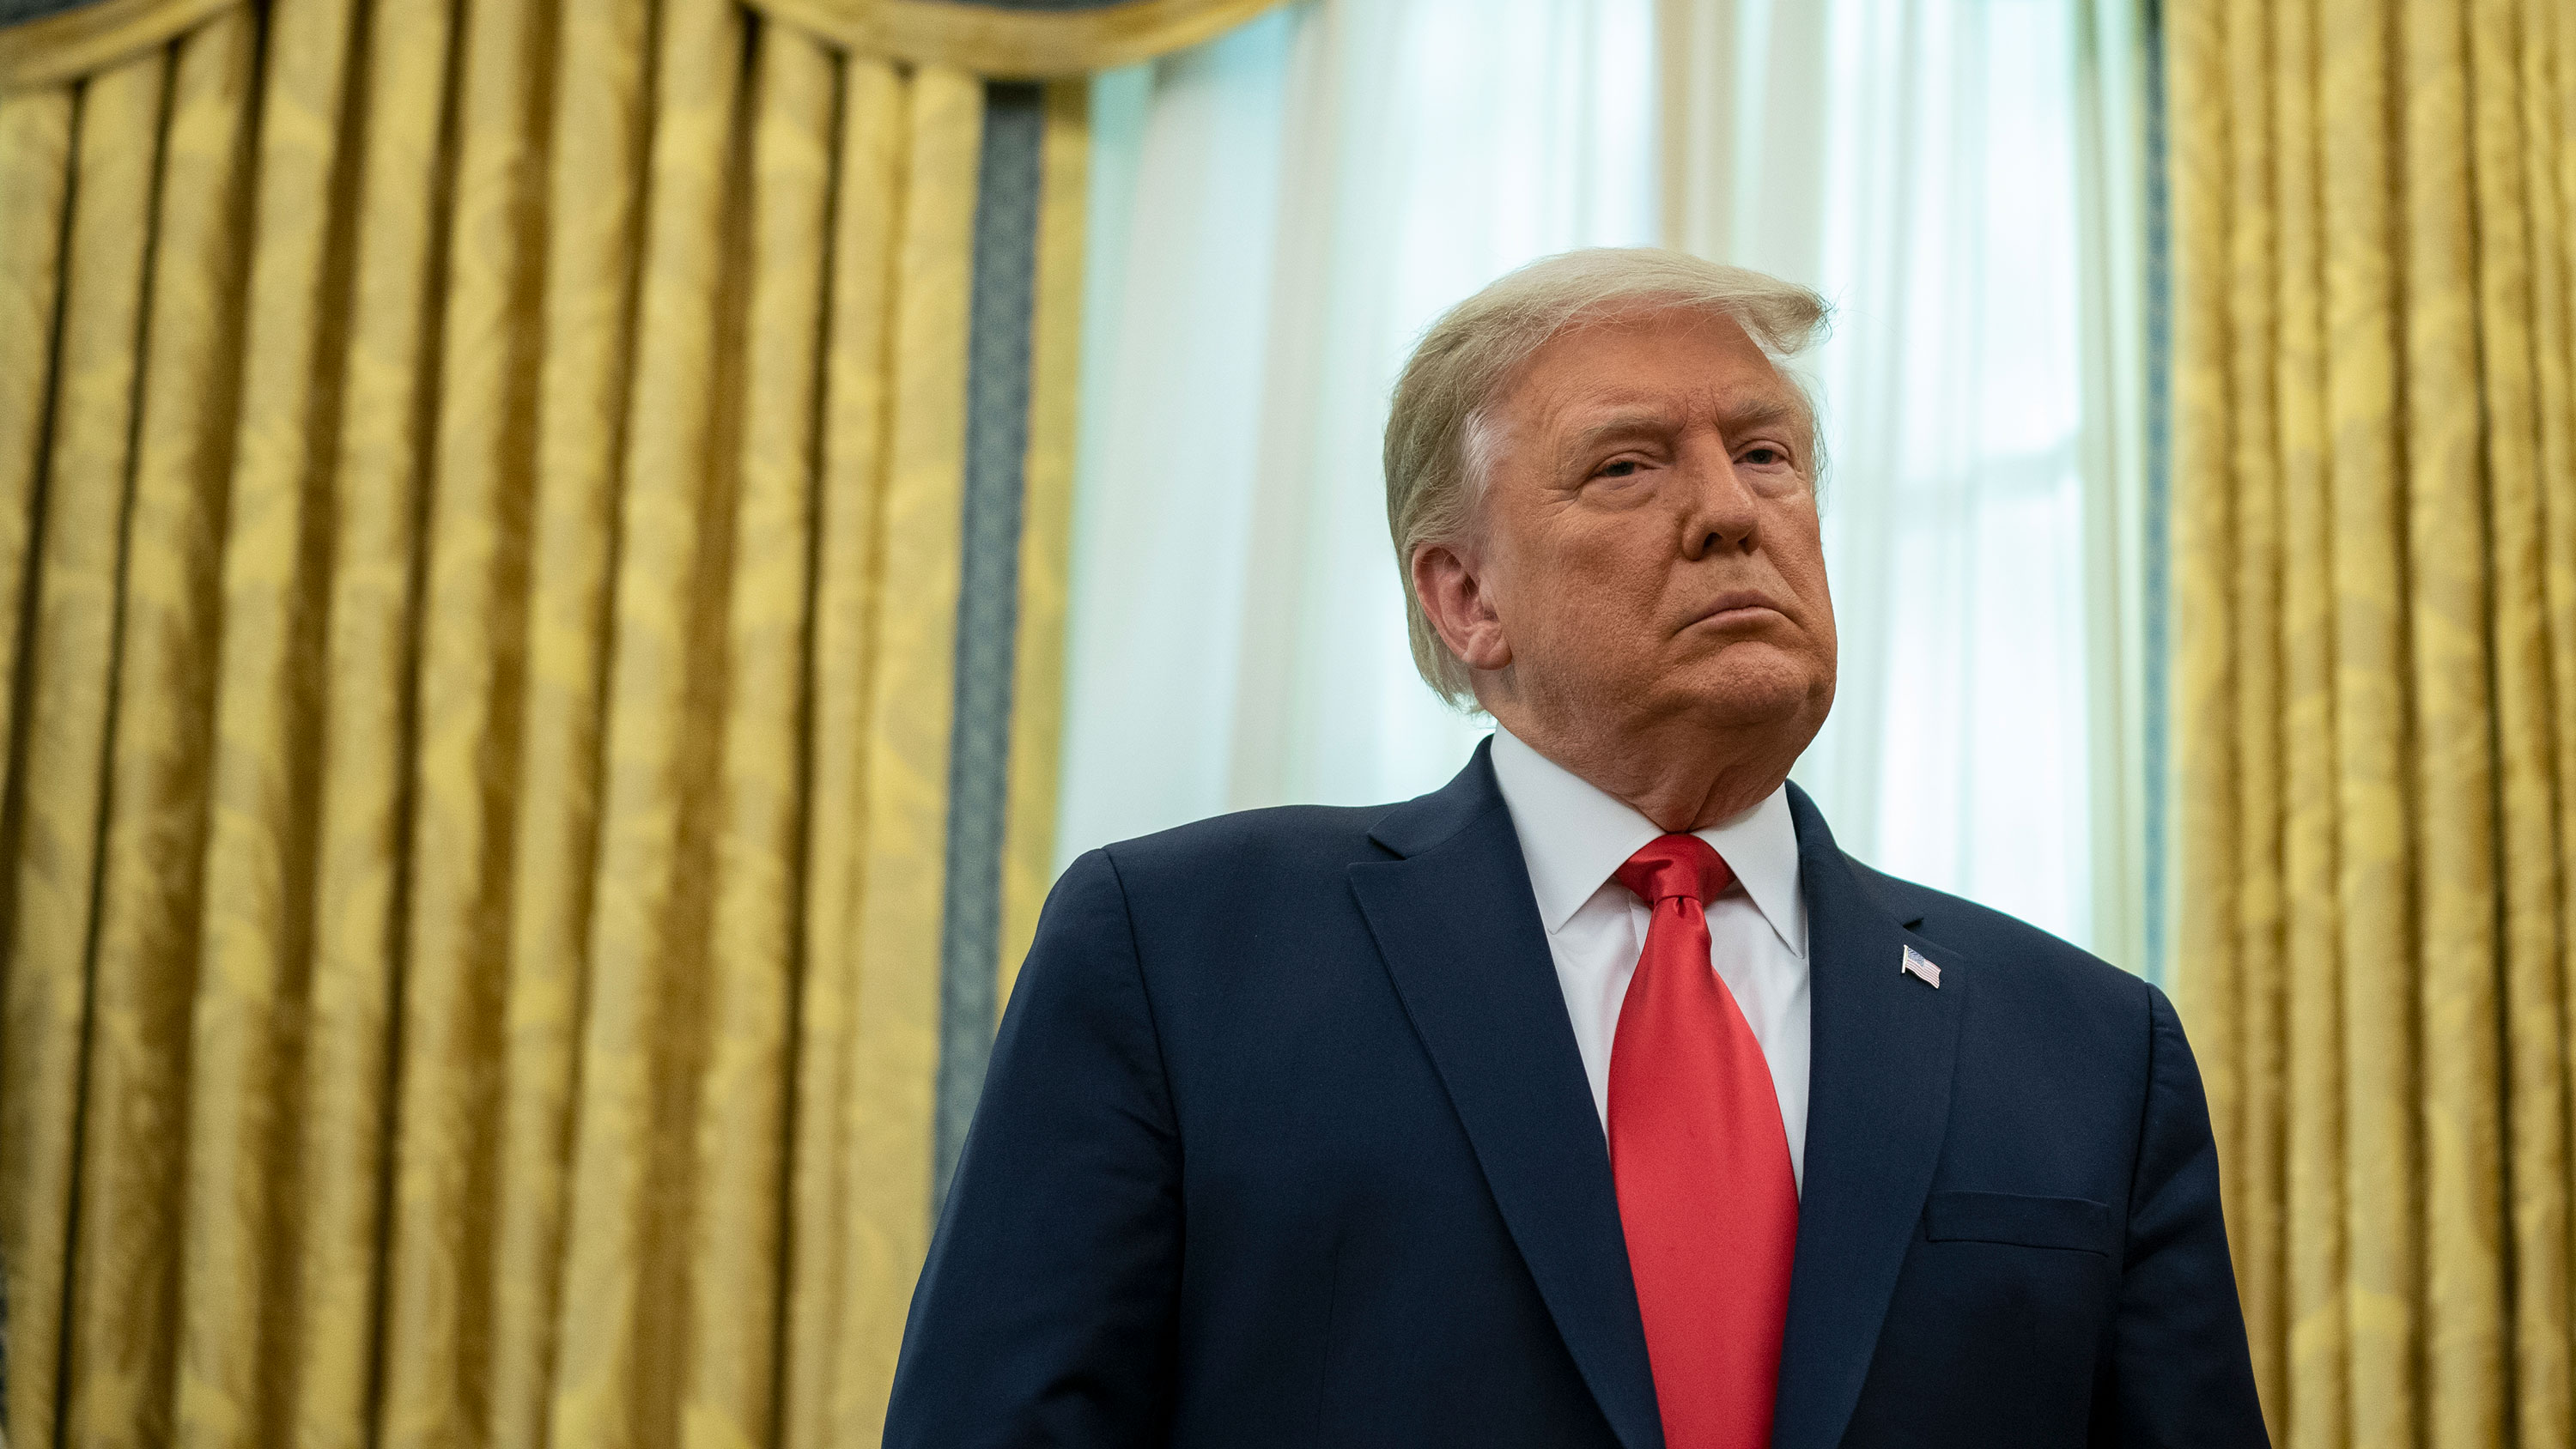 President Donald Trump attends a ceremony in the Oval Office of the White House on December 3 in Washington, DC.